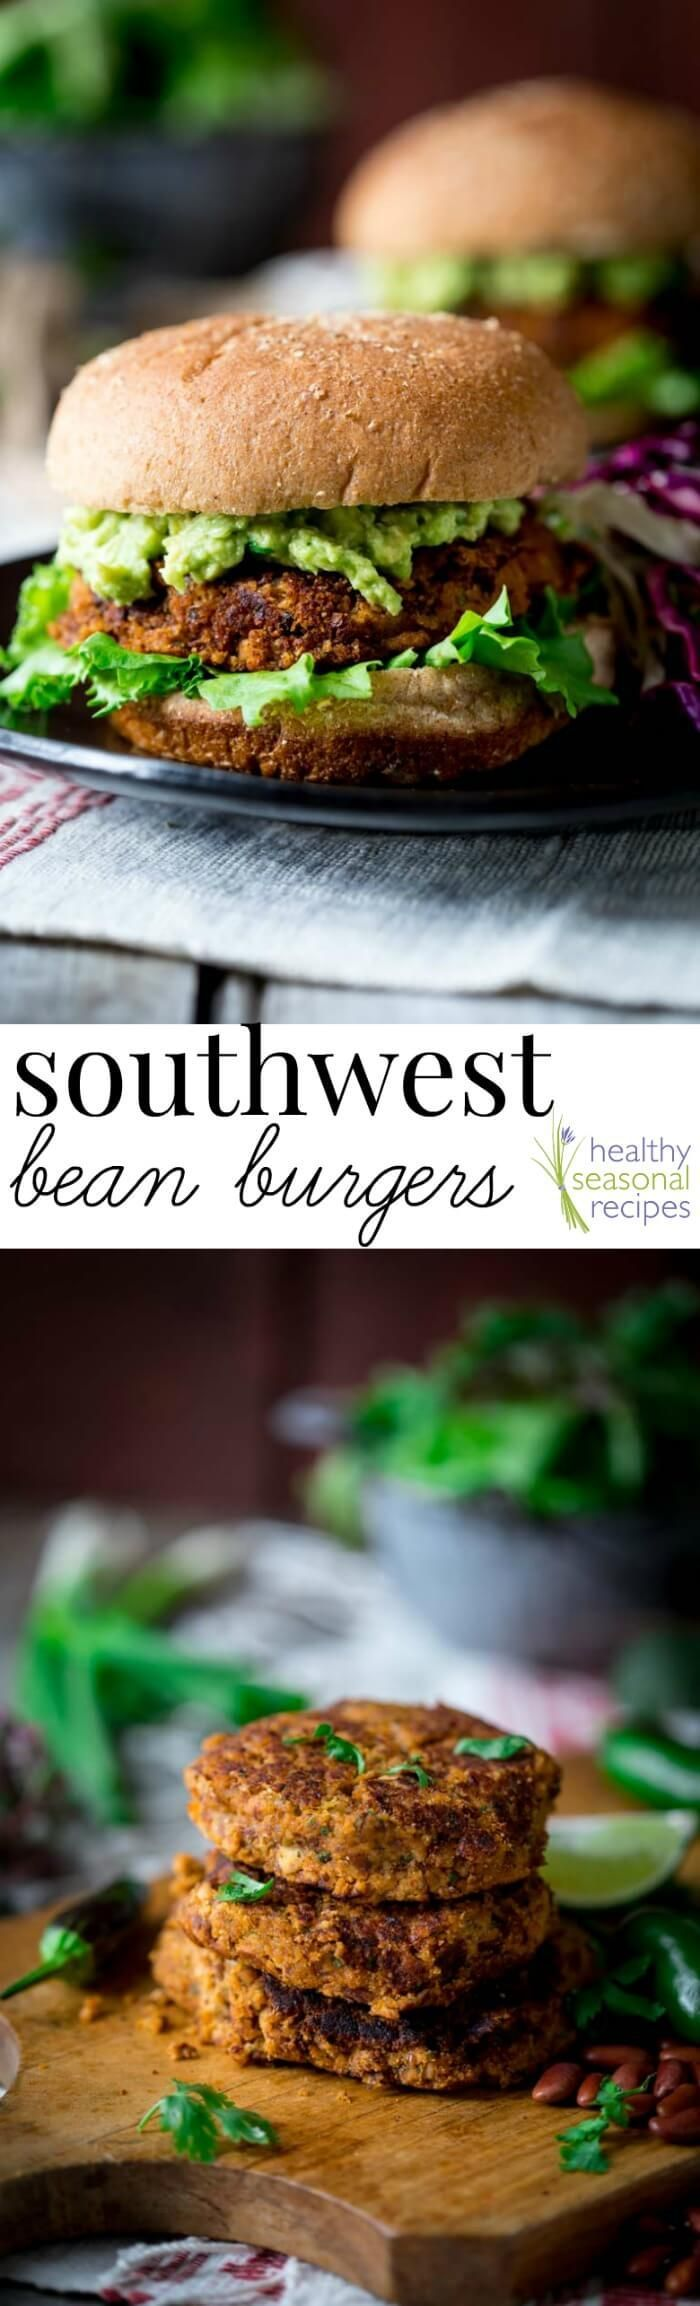 These Southwest Bean Burgers are savory and tender patties of goodness that will satisfy all of your vegetarian comfort food cravings. With a gluten-free option! Healthy Seasonal Recipes.